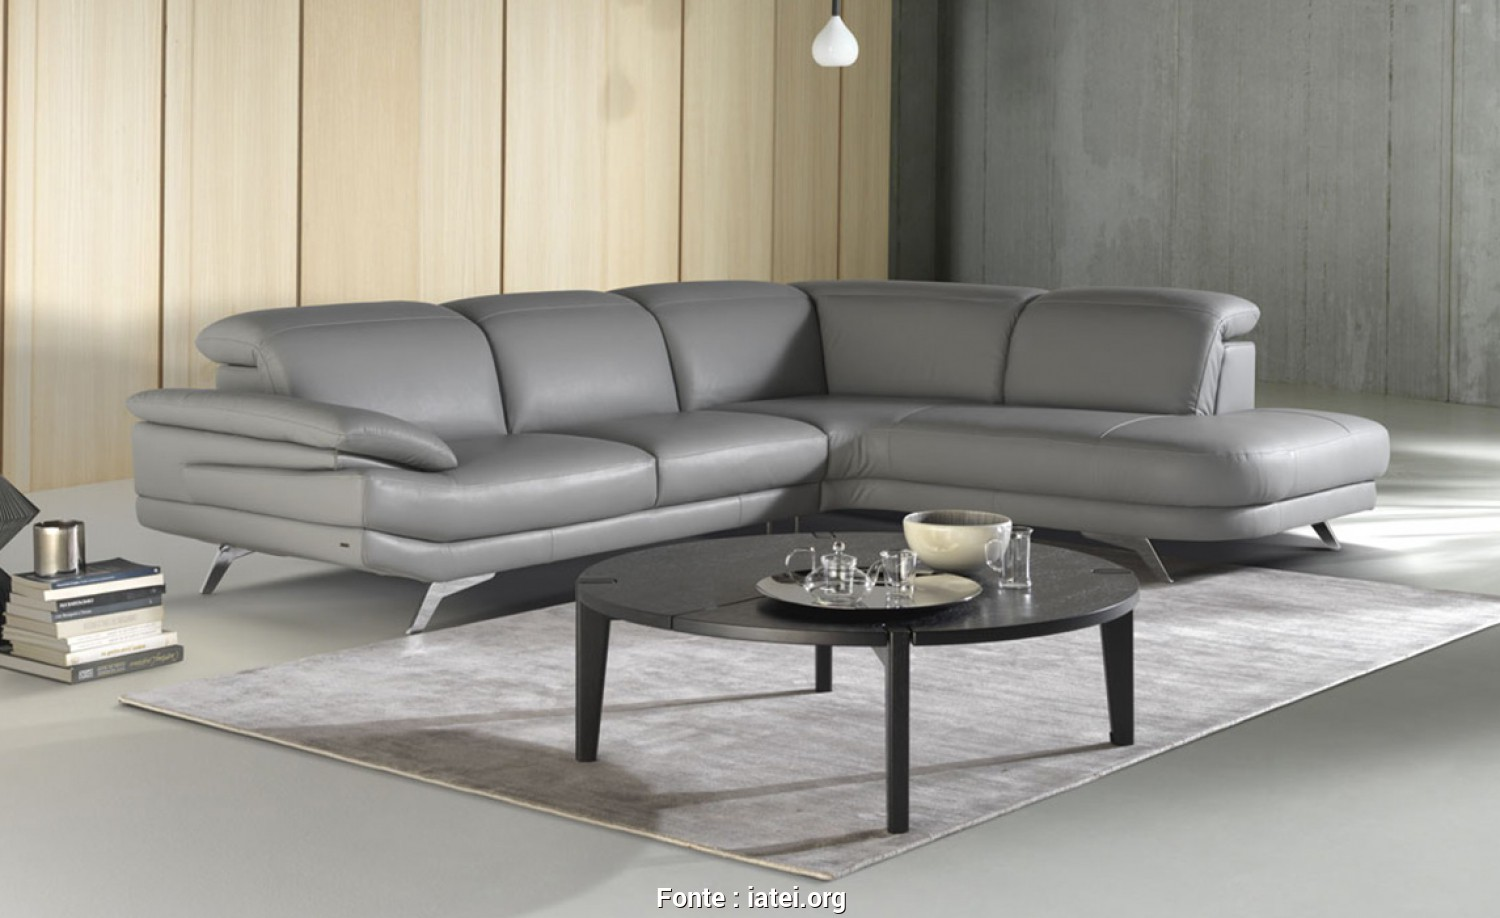 Deale 6 Divani E Divani By Natuzzi Verona - Keever For Congress